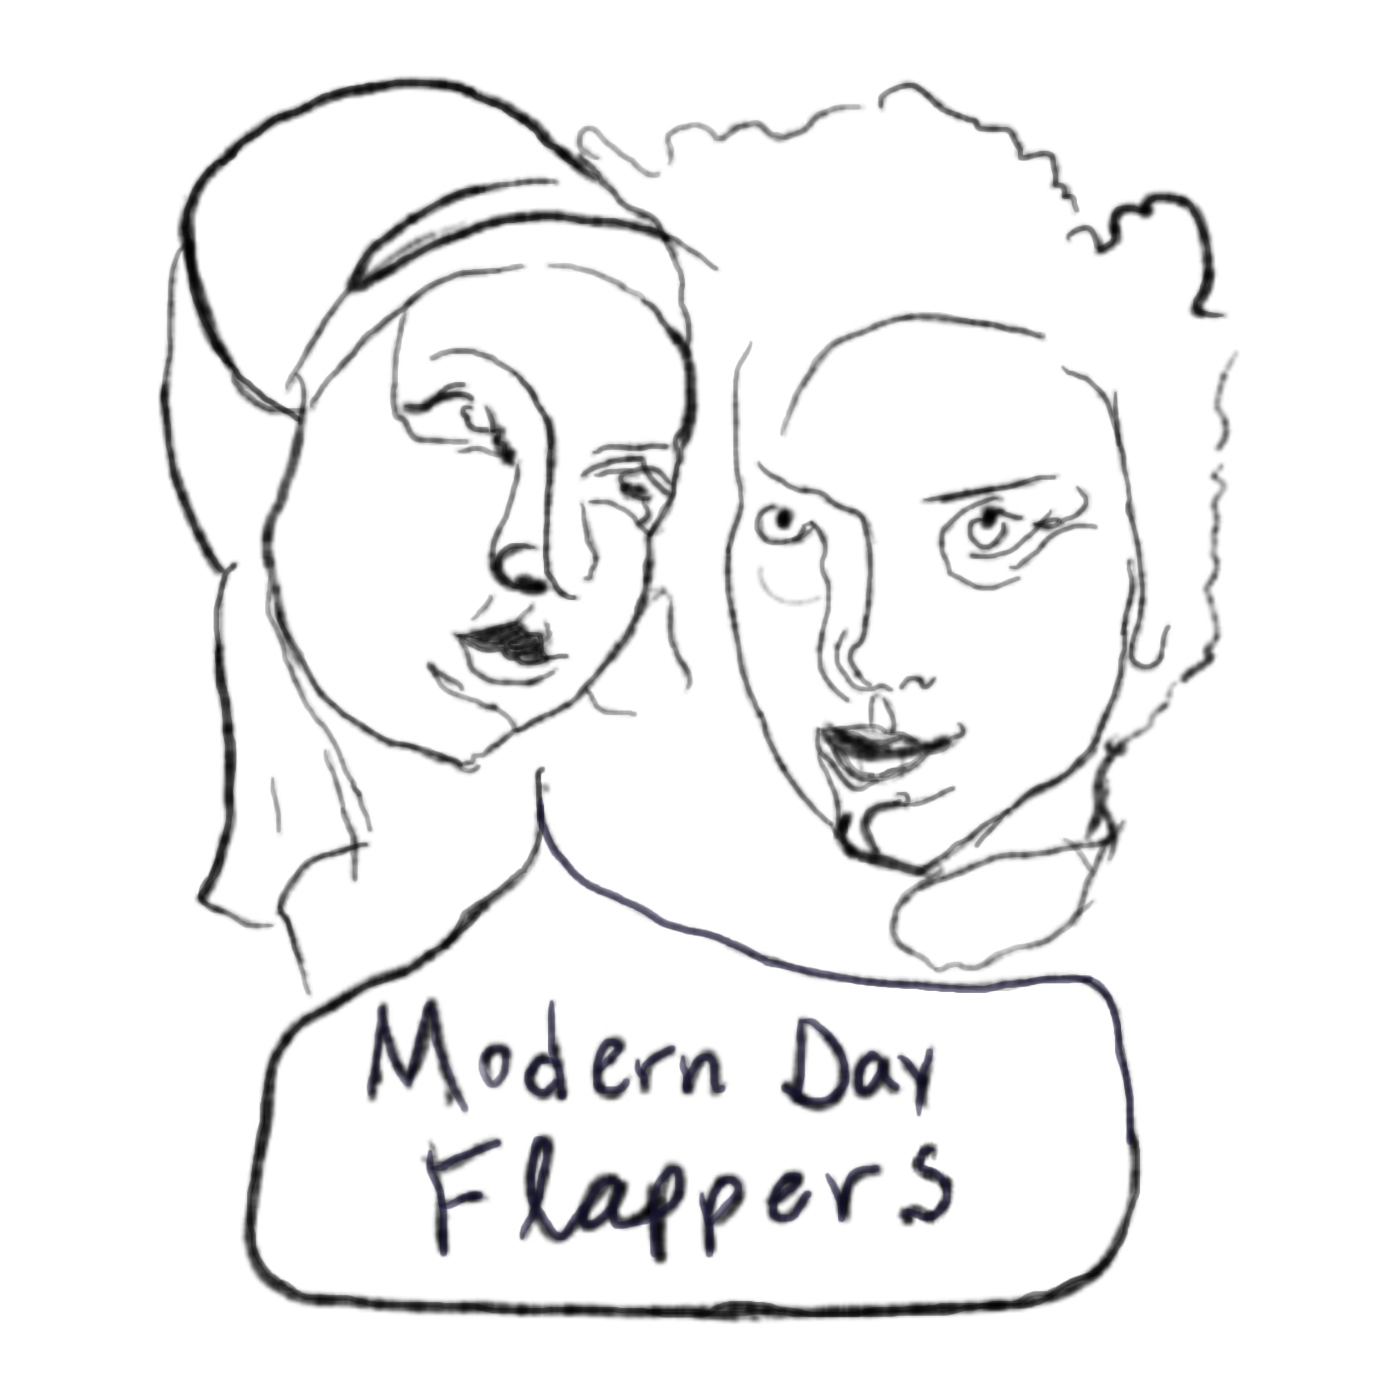 Modern Day Flappers